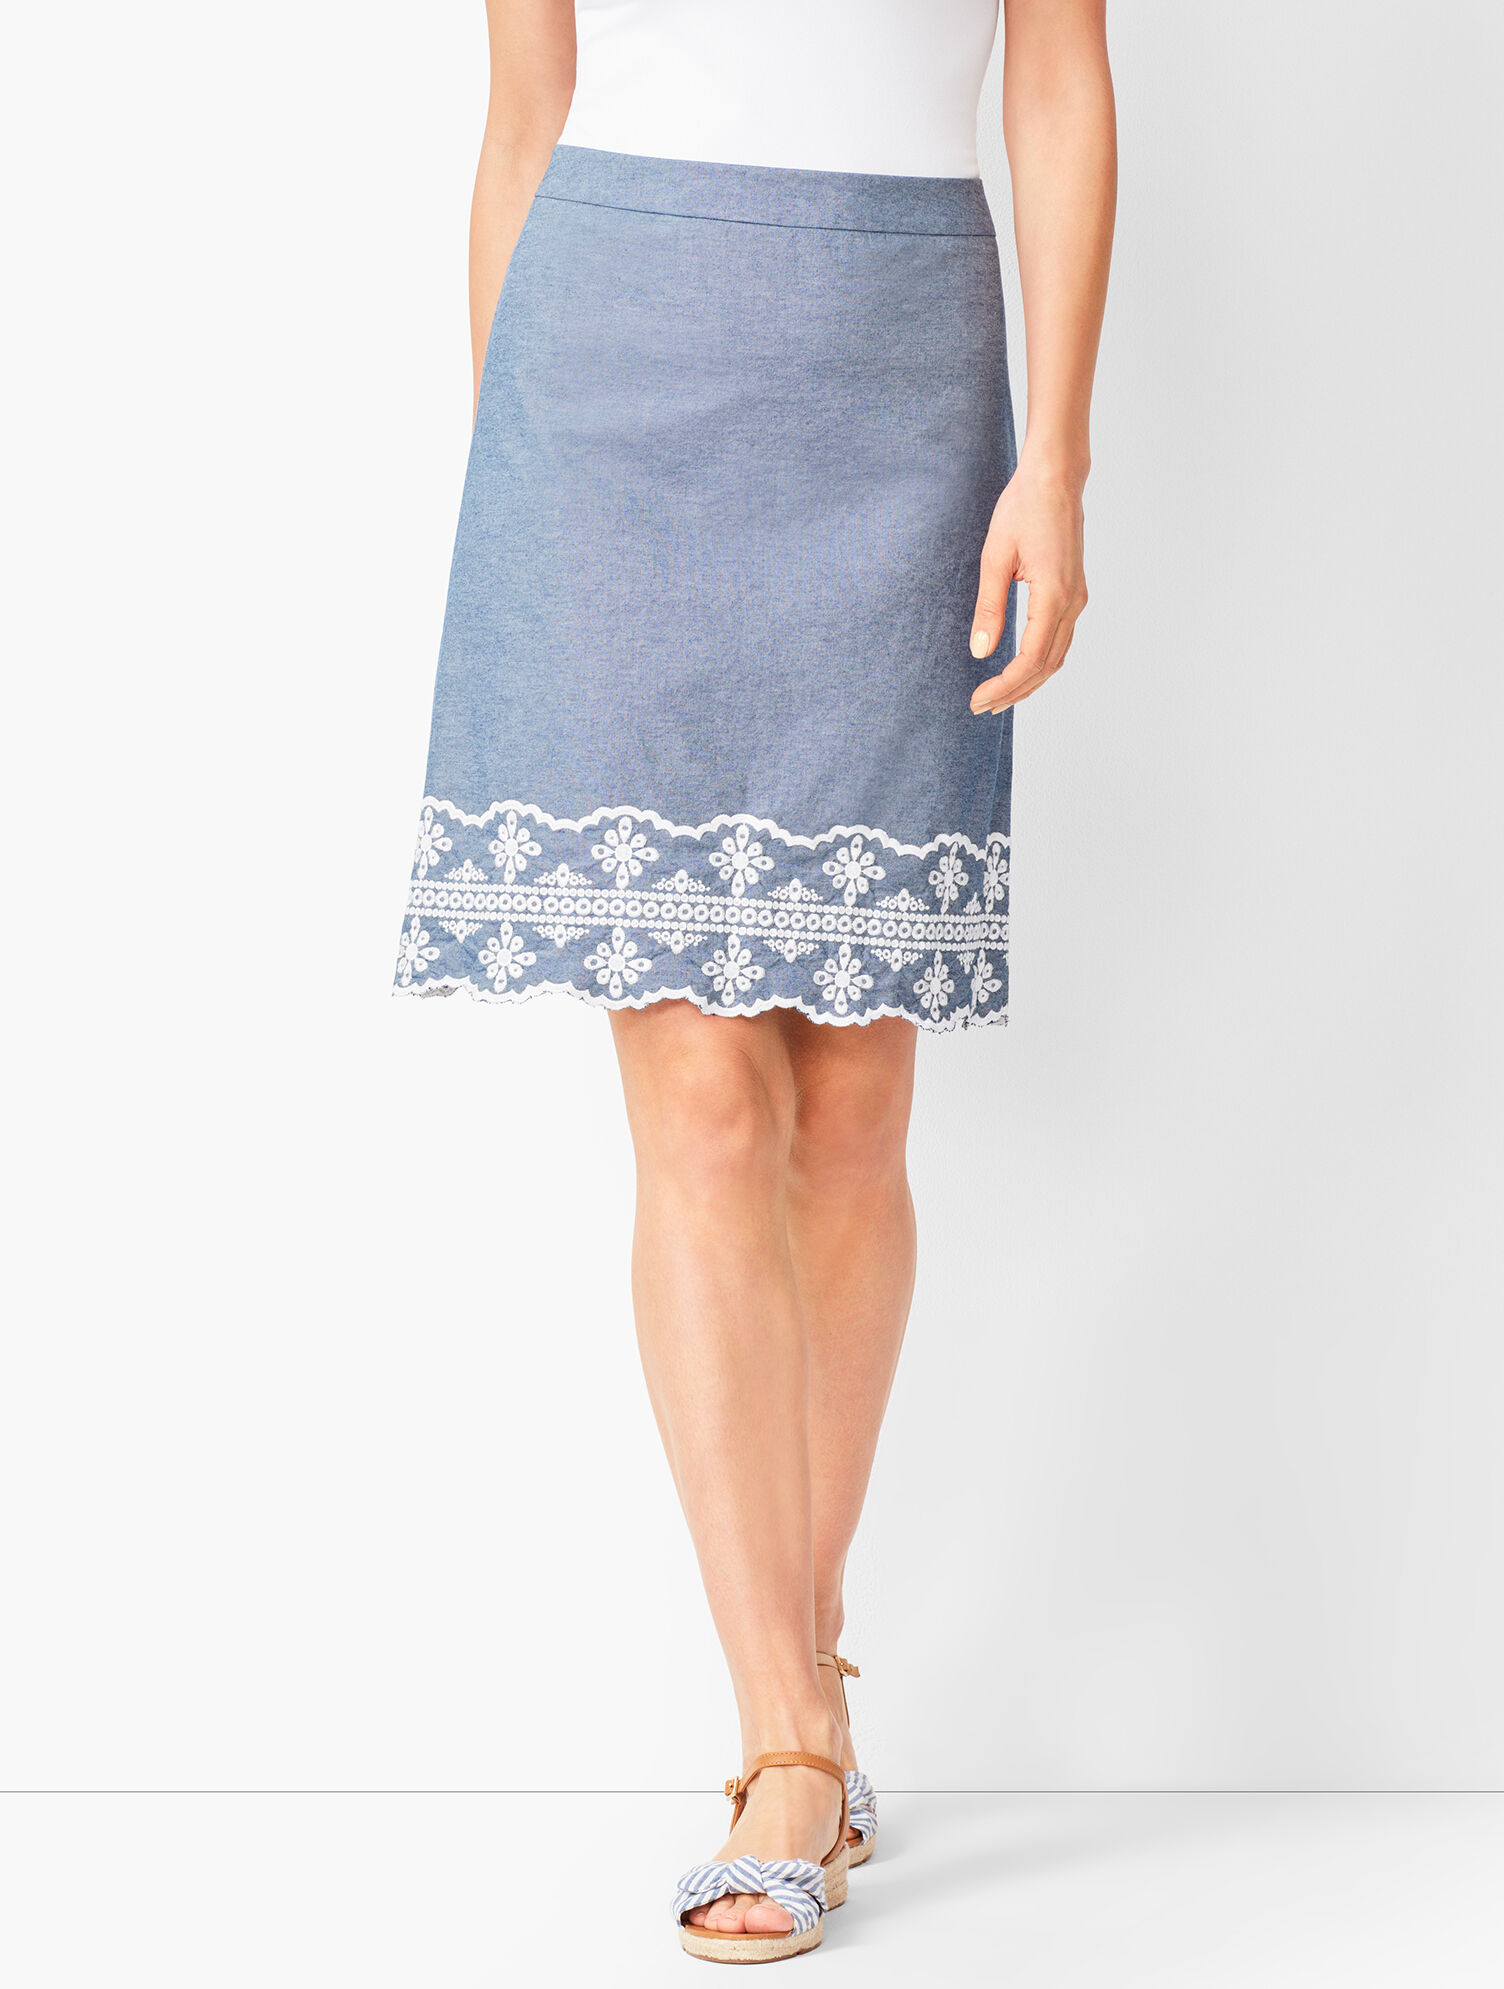 Clothing, Shoes & Accessories Skirts New Nwt Talbots Petites Size 8p 8 P White Embroidered Eyelet Pencil Skirt Cheapest Price From Our Site